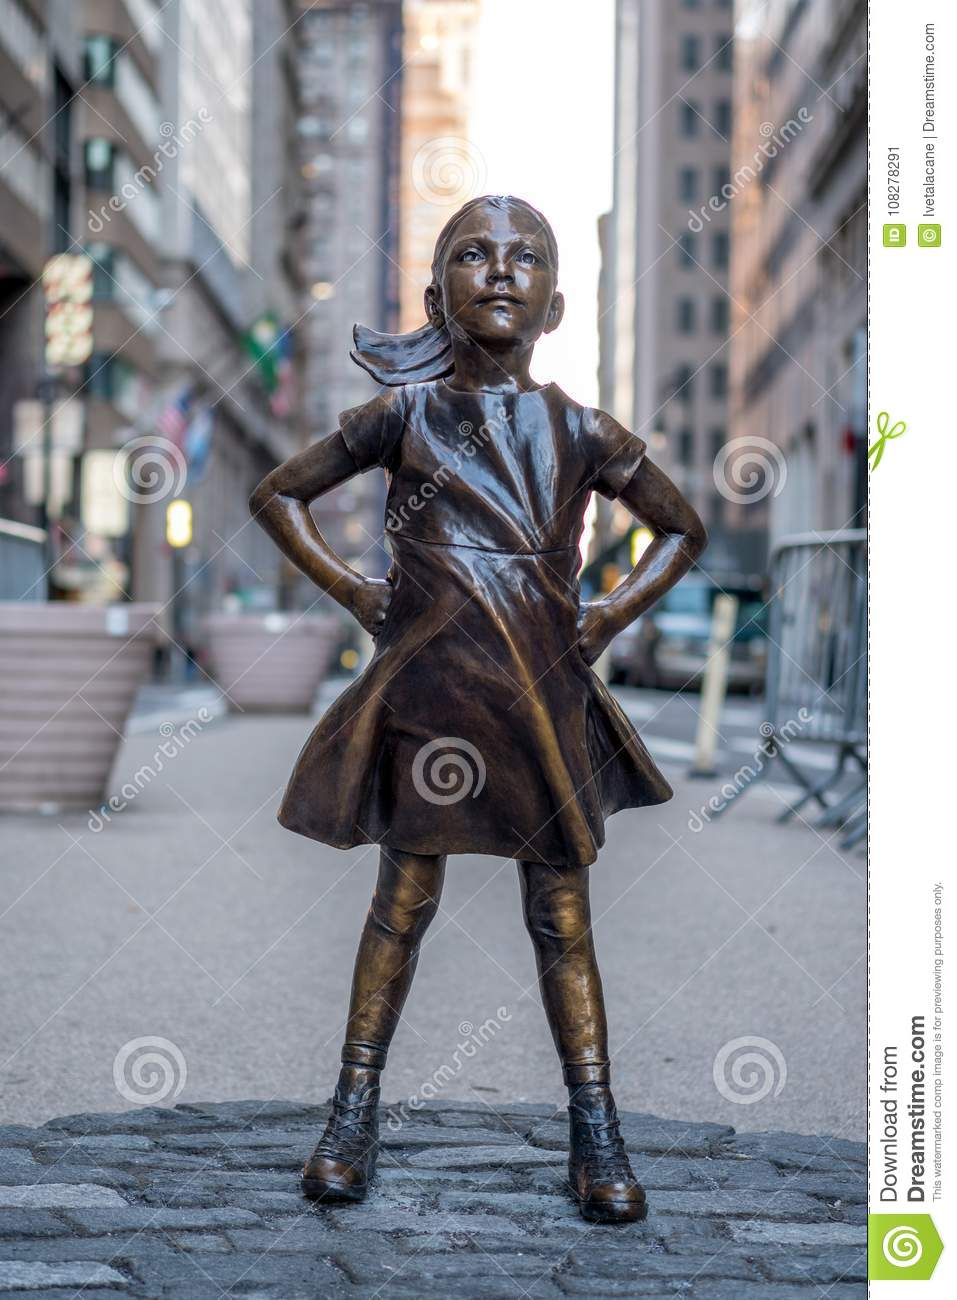 The Fearless Girl statue in Lower Manhattan, New York City